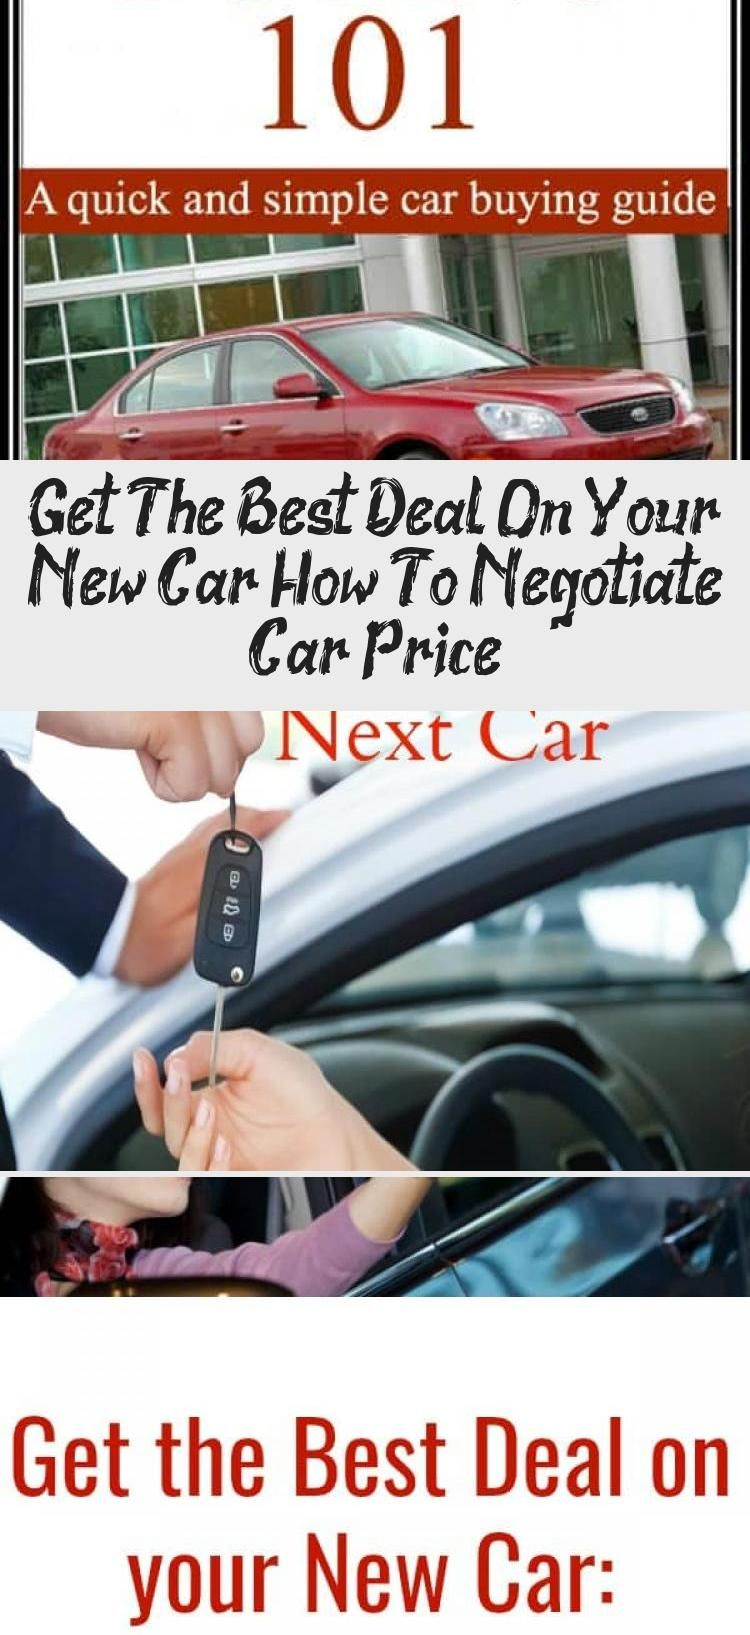 Get The Best Deal On Your New Car How To Negotiate Car Price Car In 2020 New Cars Negotiate Car Car Buying Guide